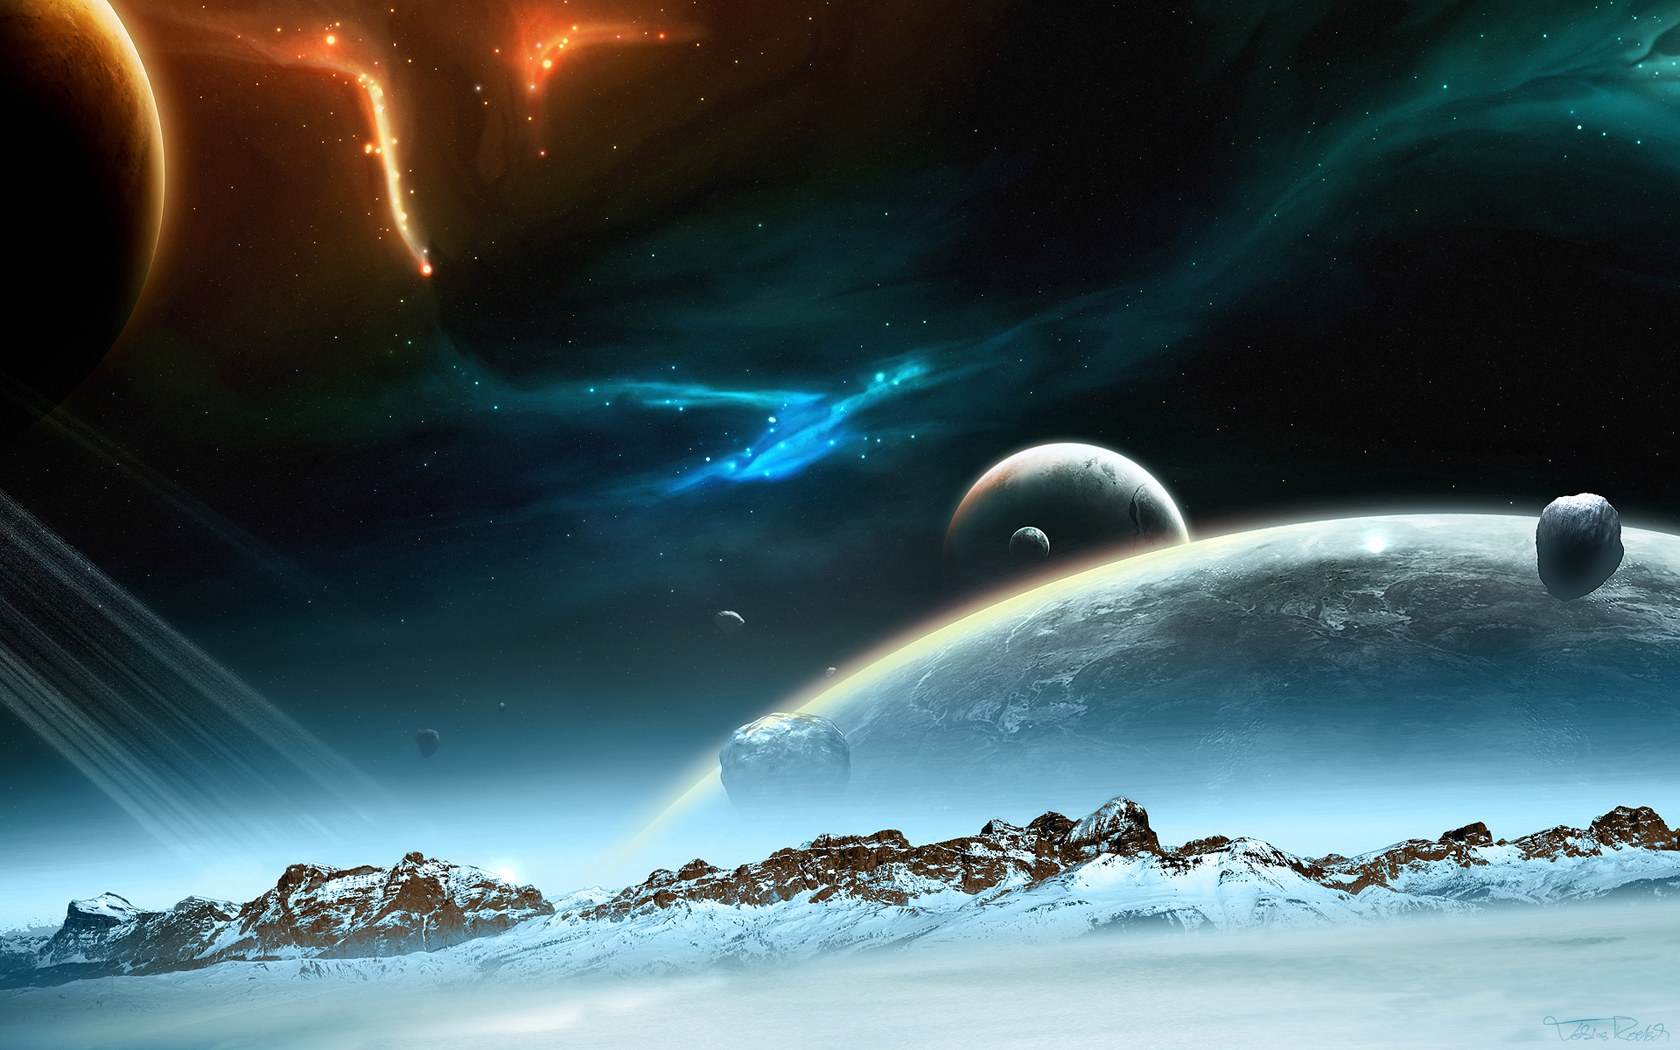 Universe_and_planets_digital_art_wallpaper_Hibernaculum-1